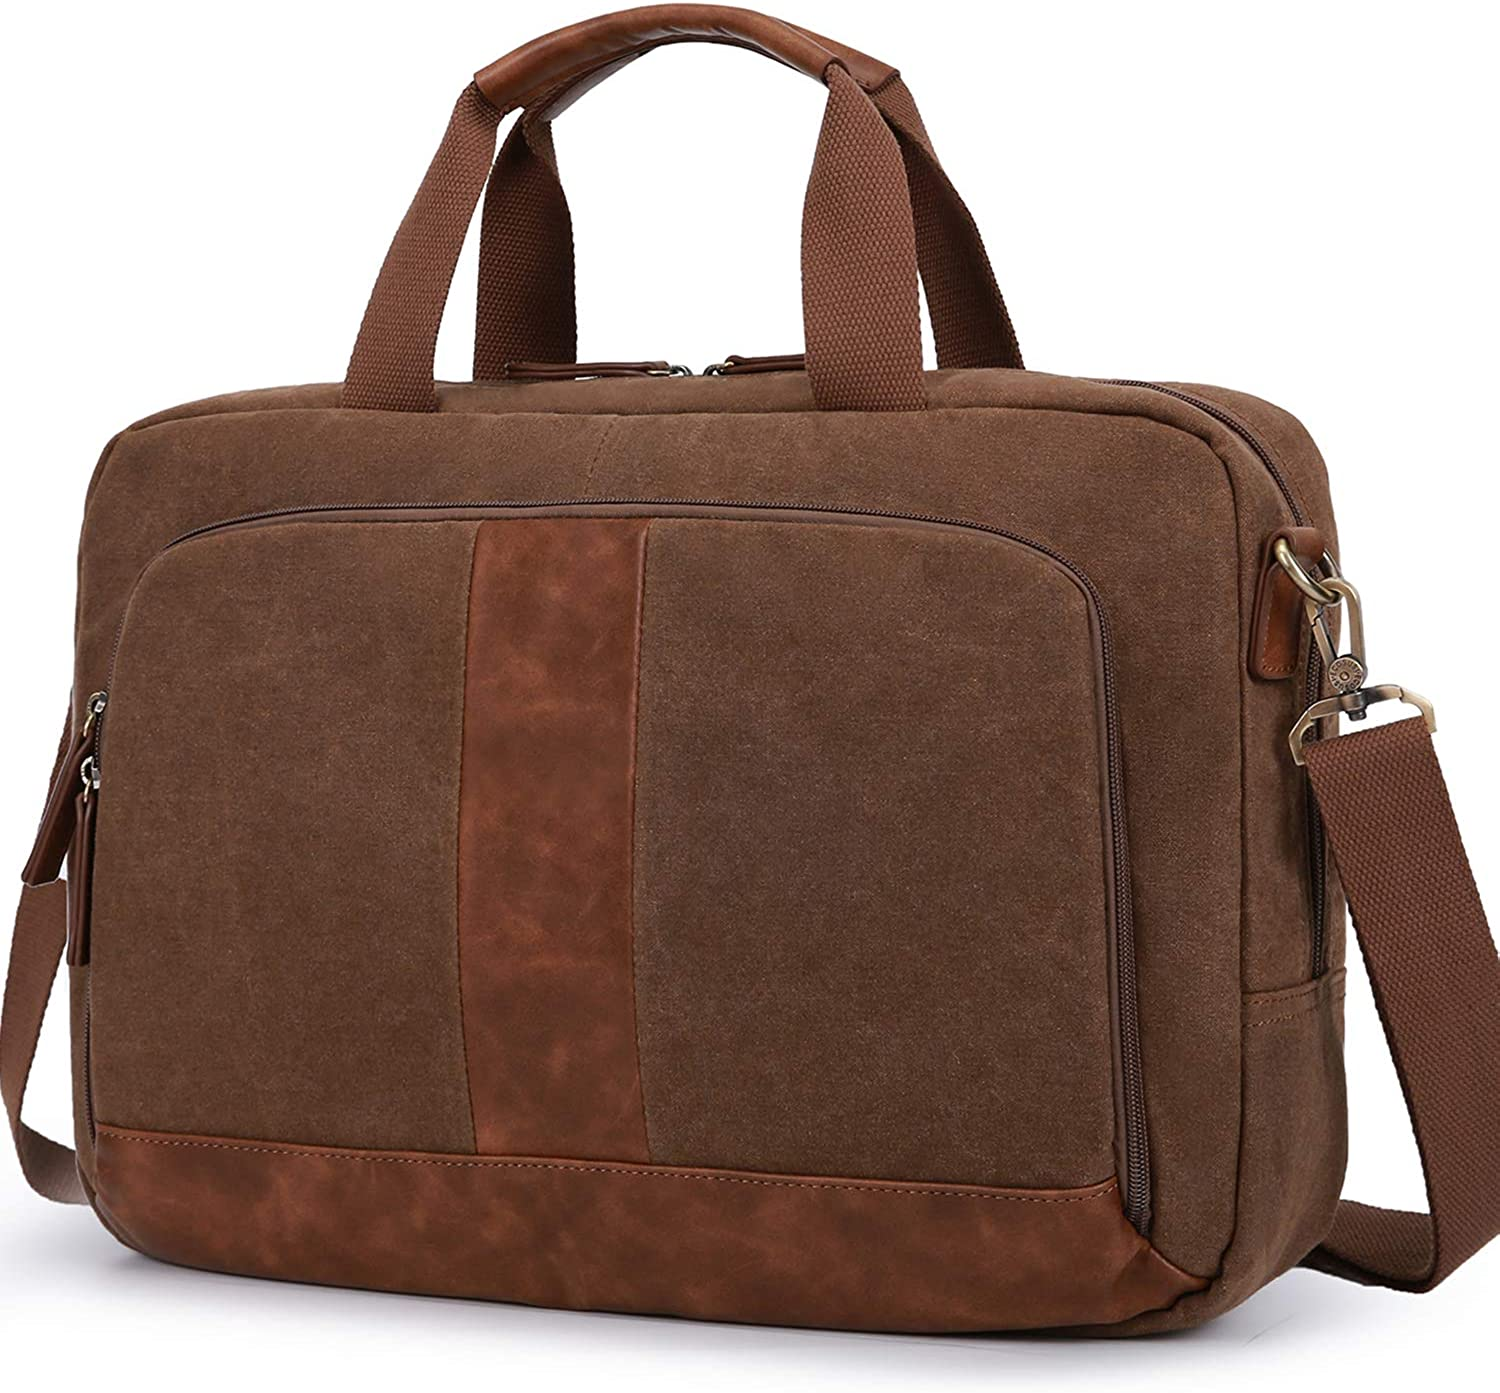 Laptop Bag 17.3 Inches ECOSUSI Canvas Computer Messenger Bag Briefcases for Men Water-Resistant for Business Work School